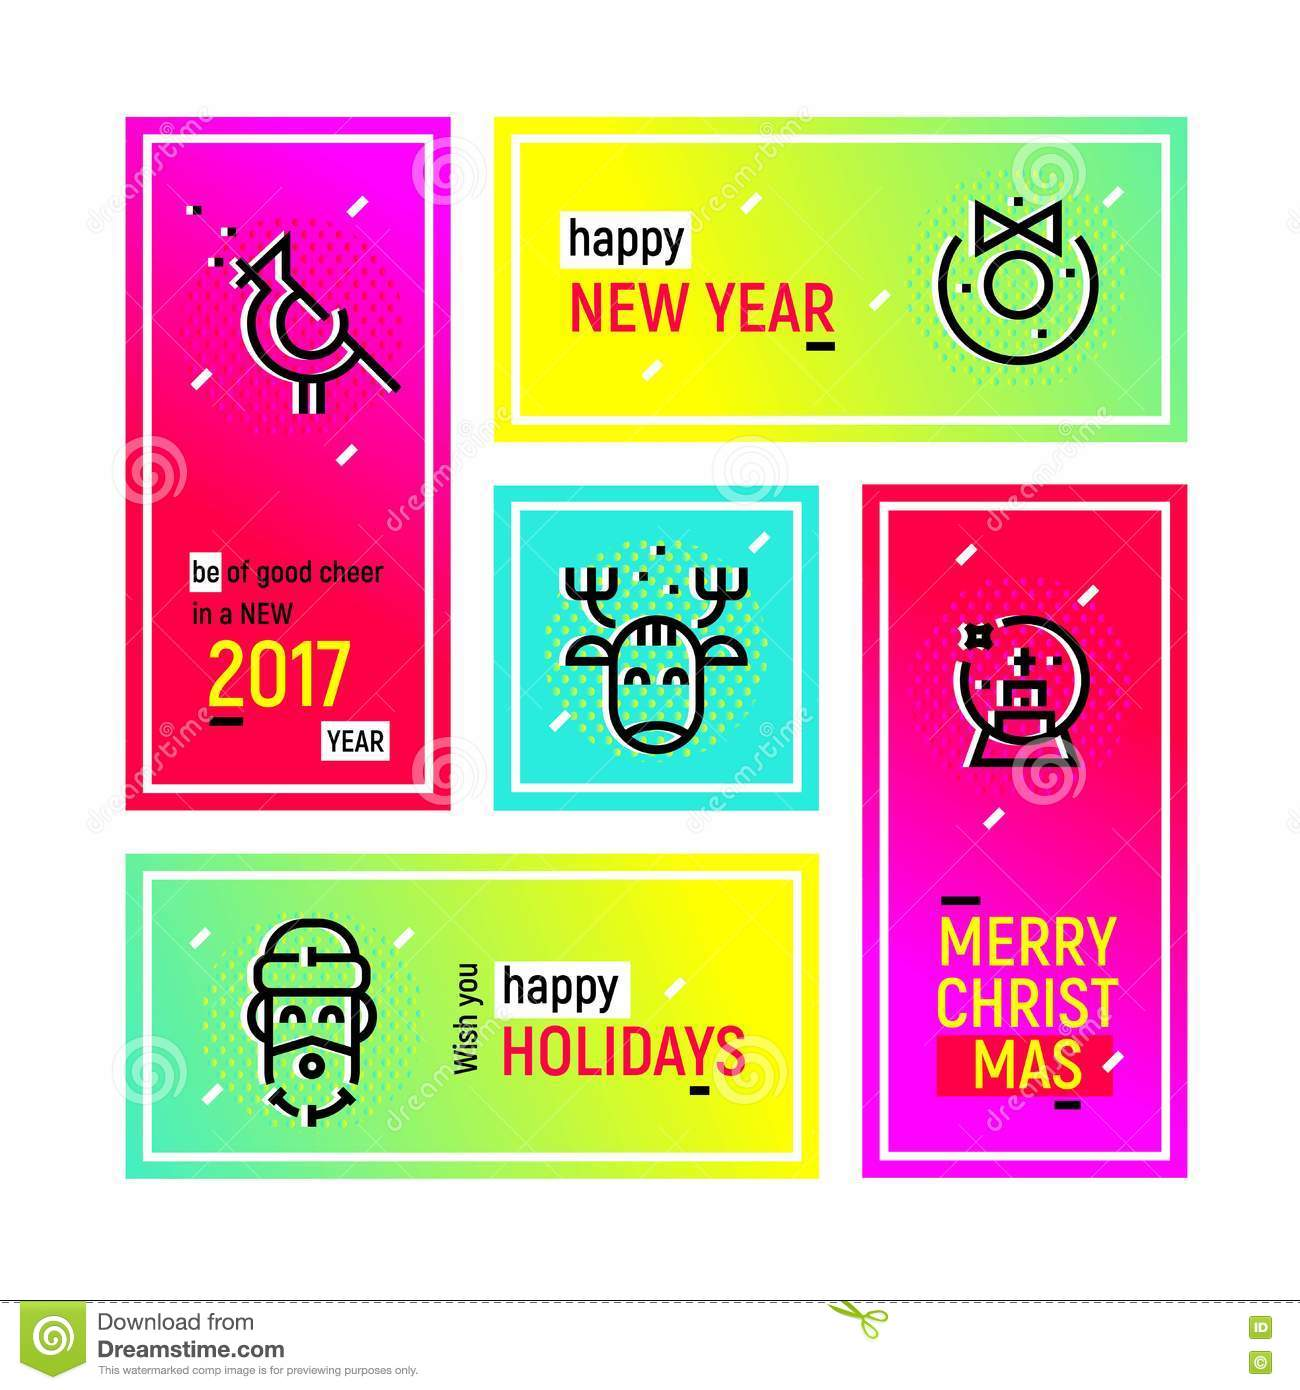 happy new year web banners set